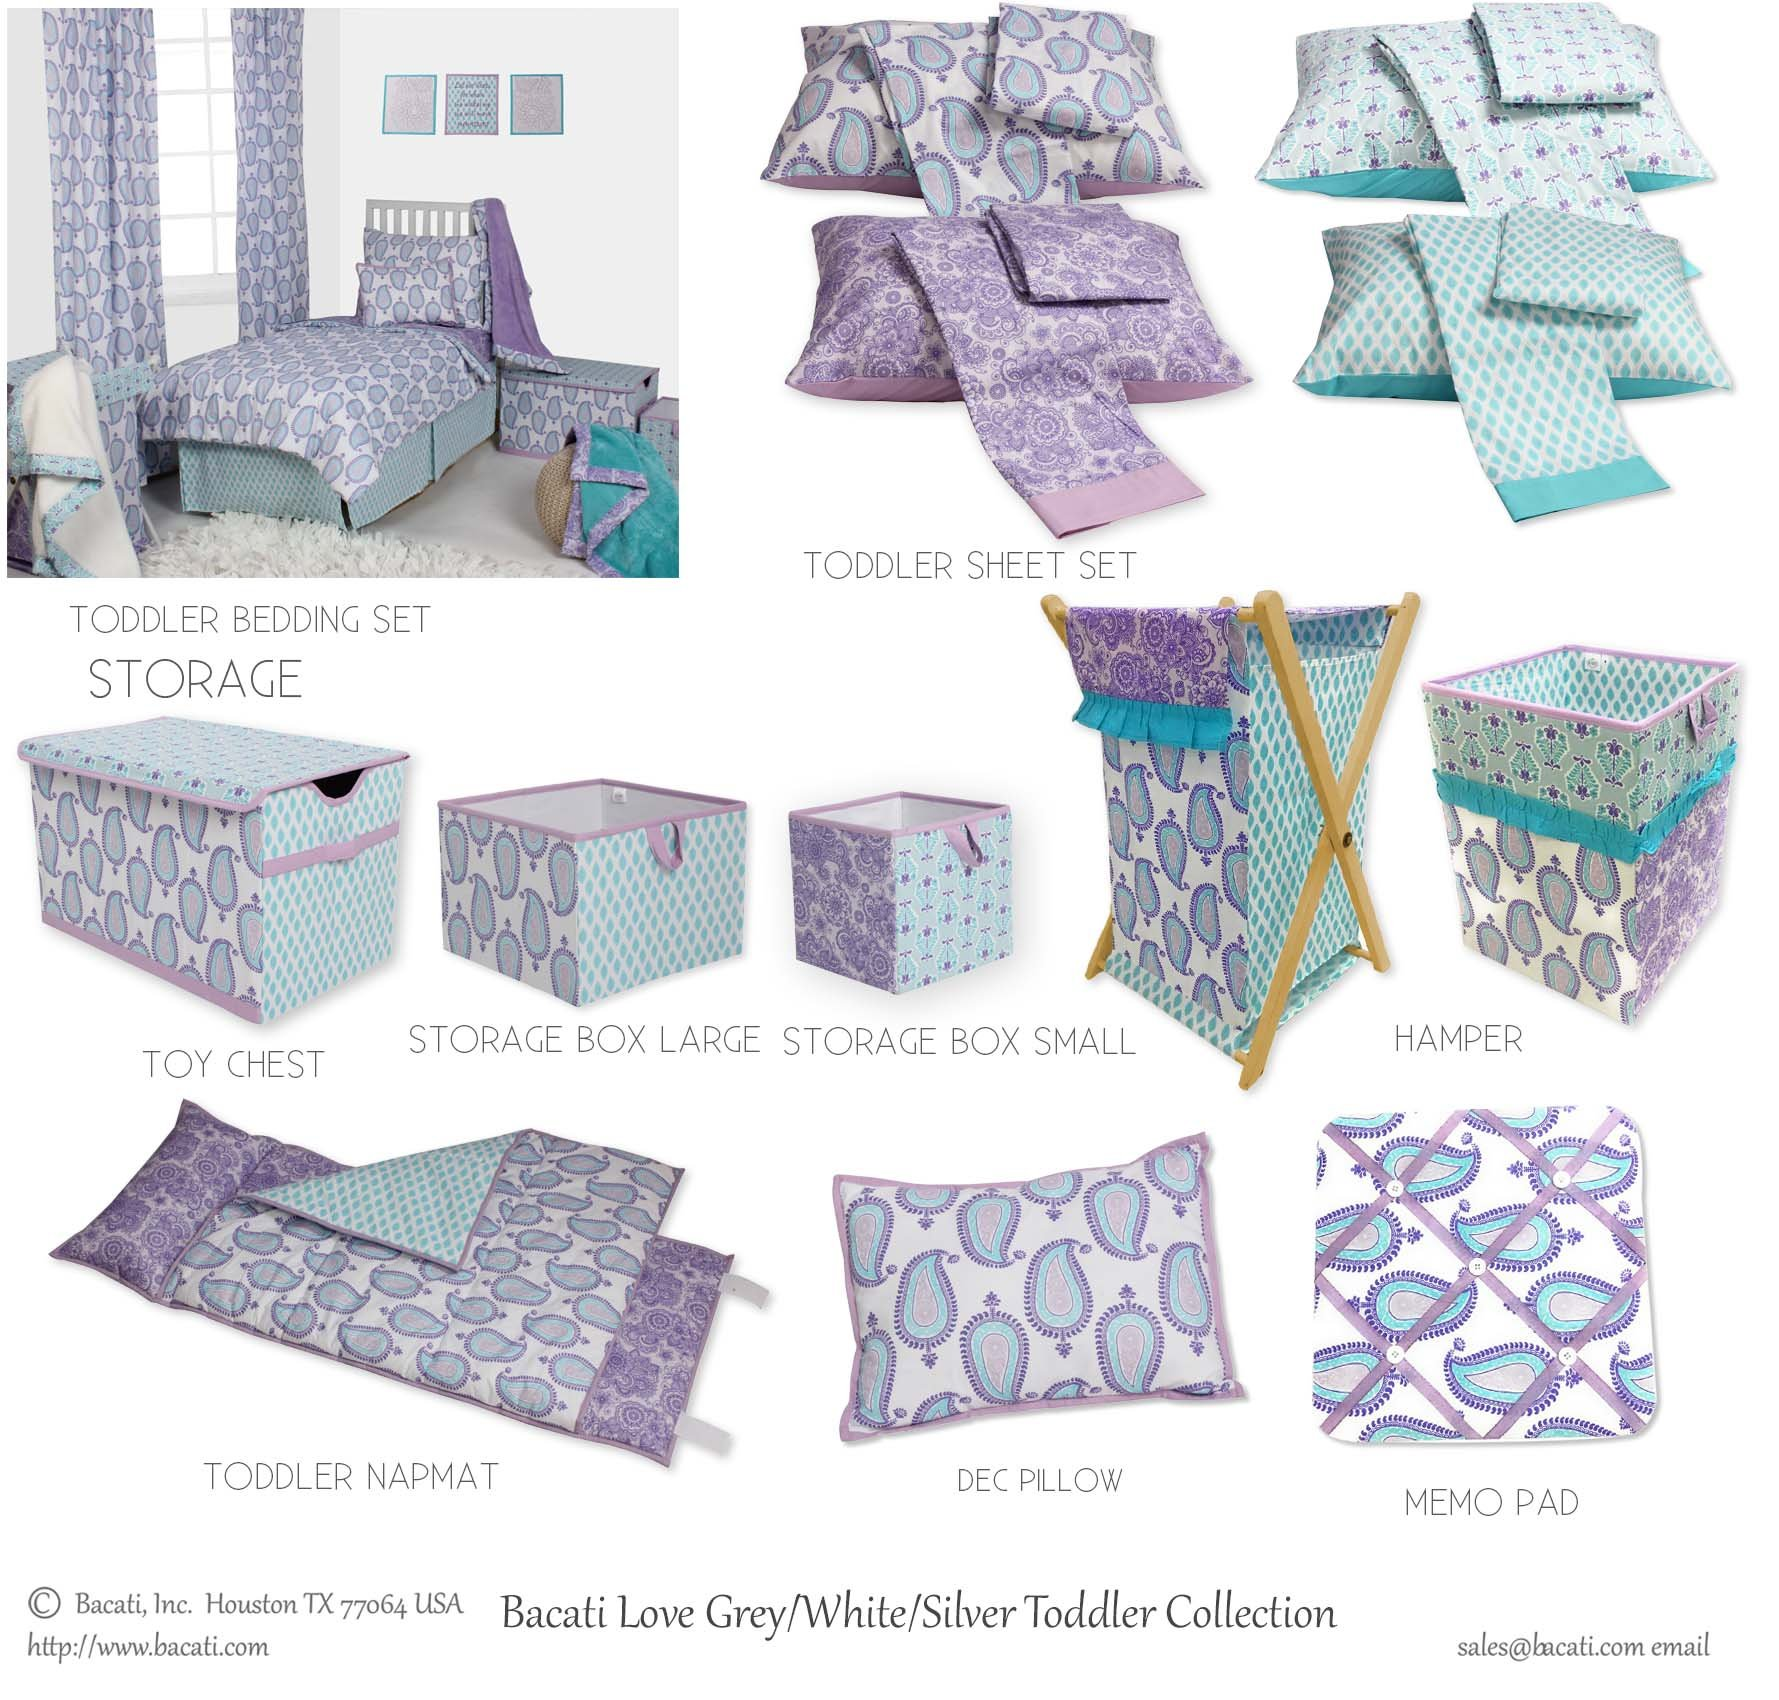 Bacati Isabella Girls Paisley Hamper Cover with Natural Finish Wood Frame and Mesh Liner, Lilac/Purple/Aqua by Bacati